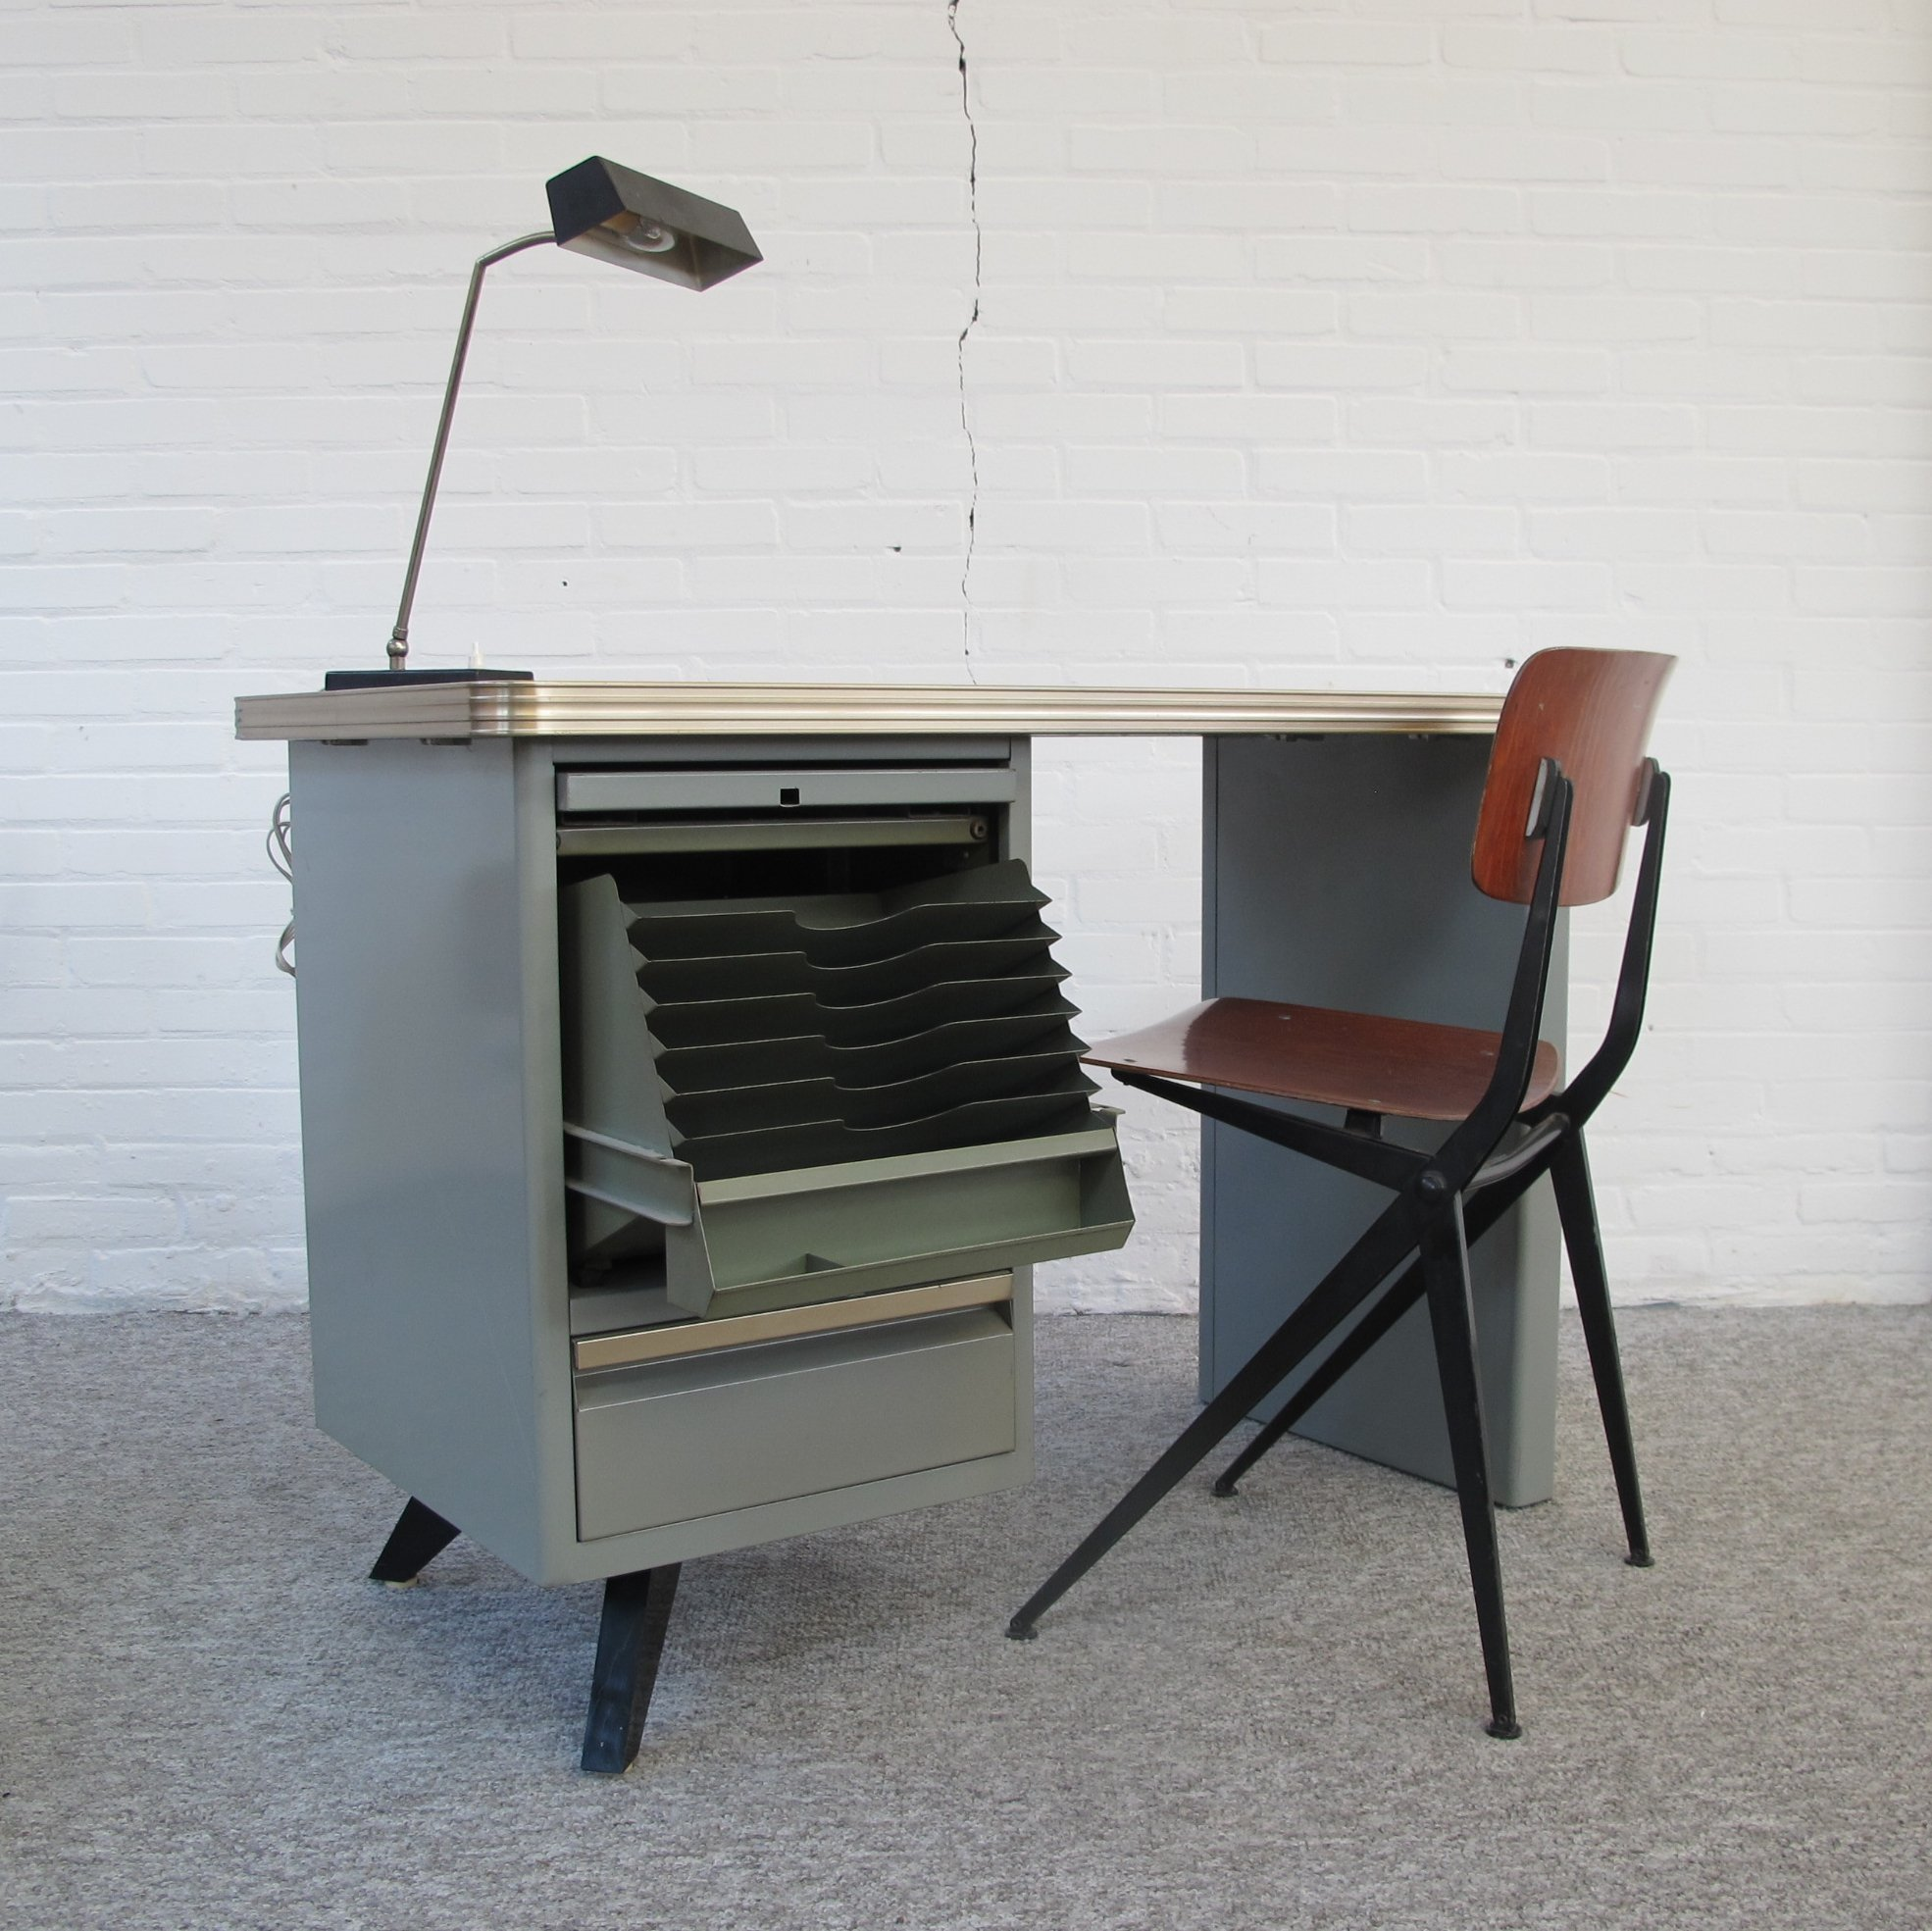 Old industrial office desk by Atal France, 1960s | #88188 on office furniture, office supplies, coffee table, computer table, office paint colors, office employees, office workstation, office cubicles, office plants, computer furniture, office table, filing cabinet, office setting, computer chair, office chair, office floor, office room, office people, office counter, office paper, dining chair, home office furniture, office cabinet, office sofa, office equipment, conference table, office work, office background, office door, office layout, office workers, office with table,